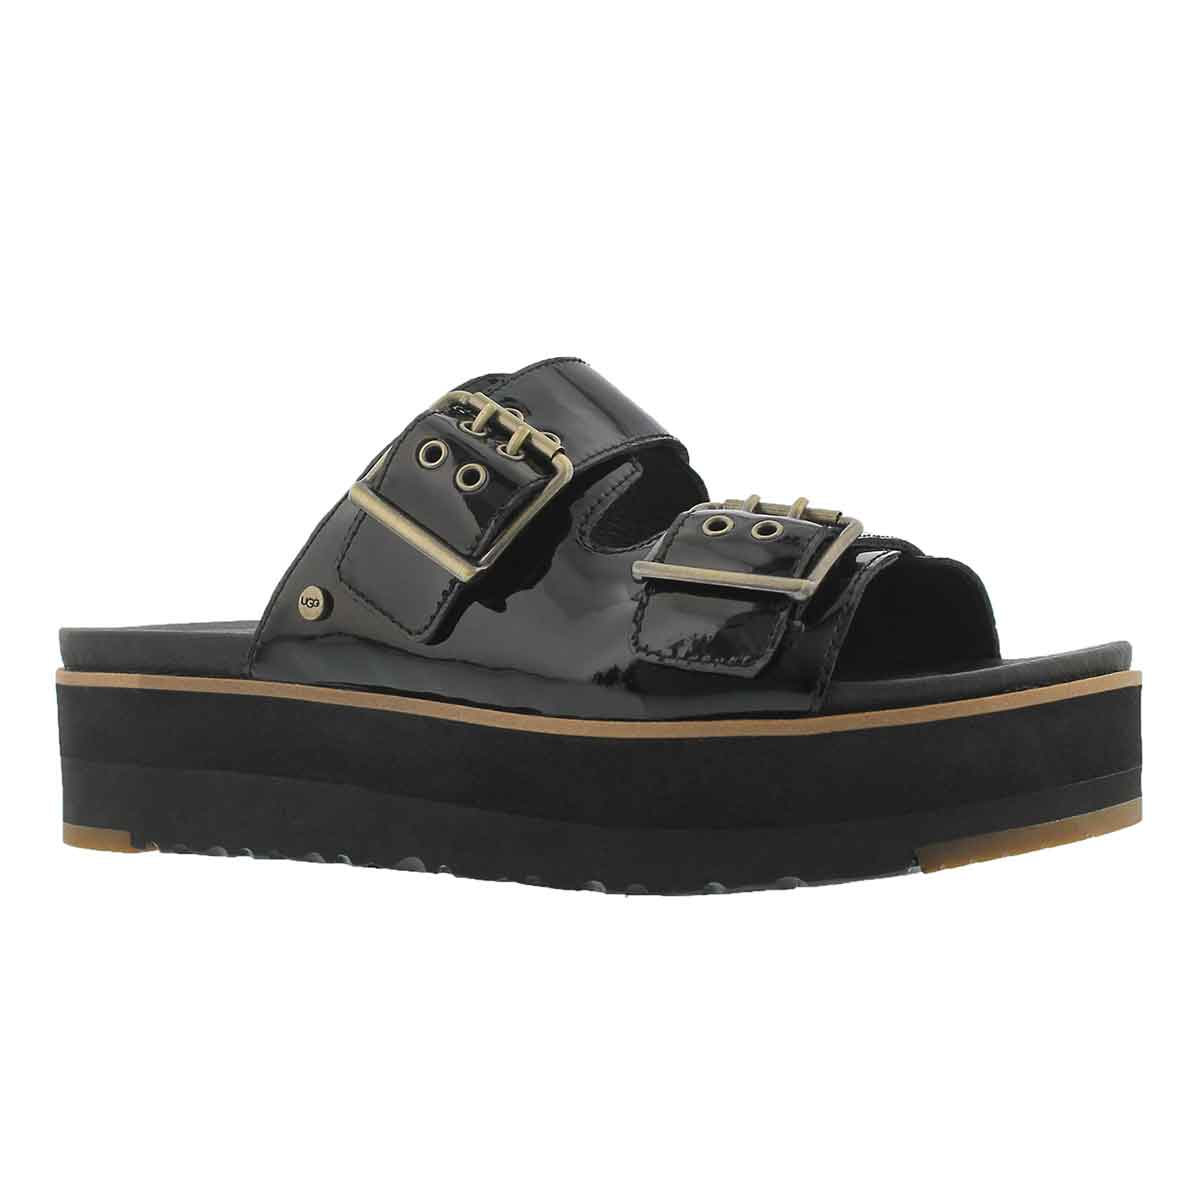 Women's CAMMIE black casual slide sandals